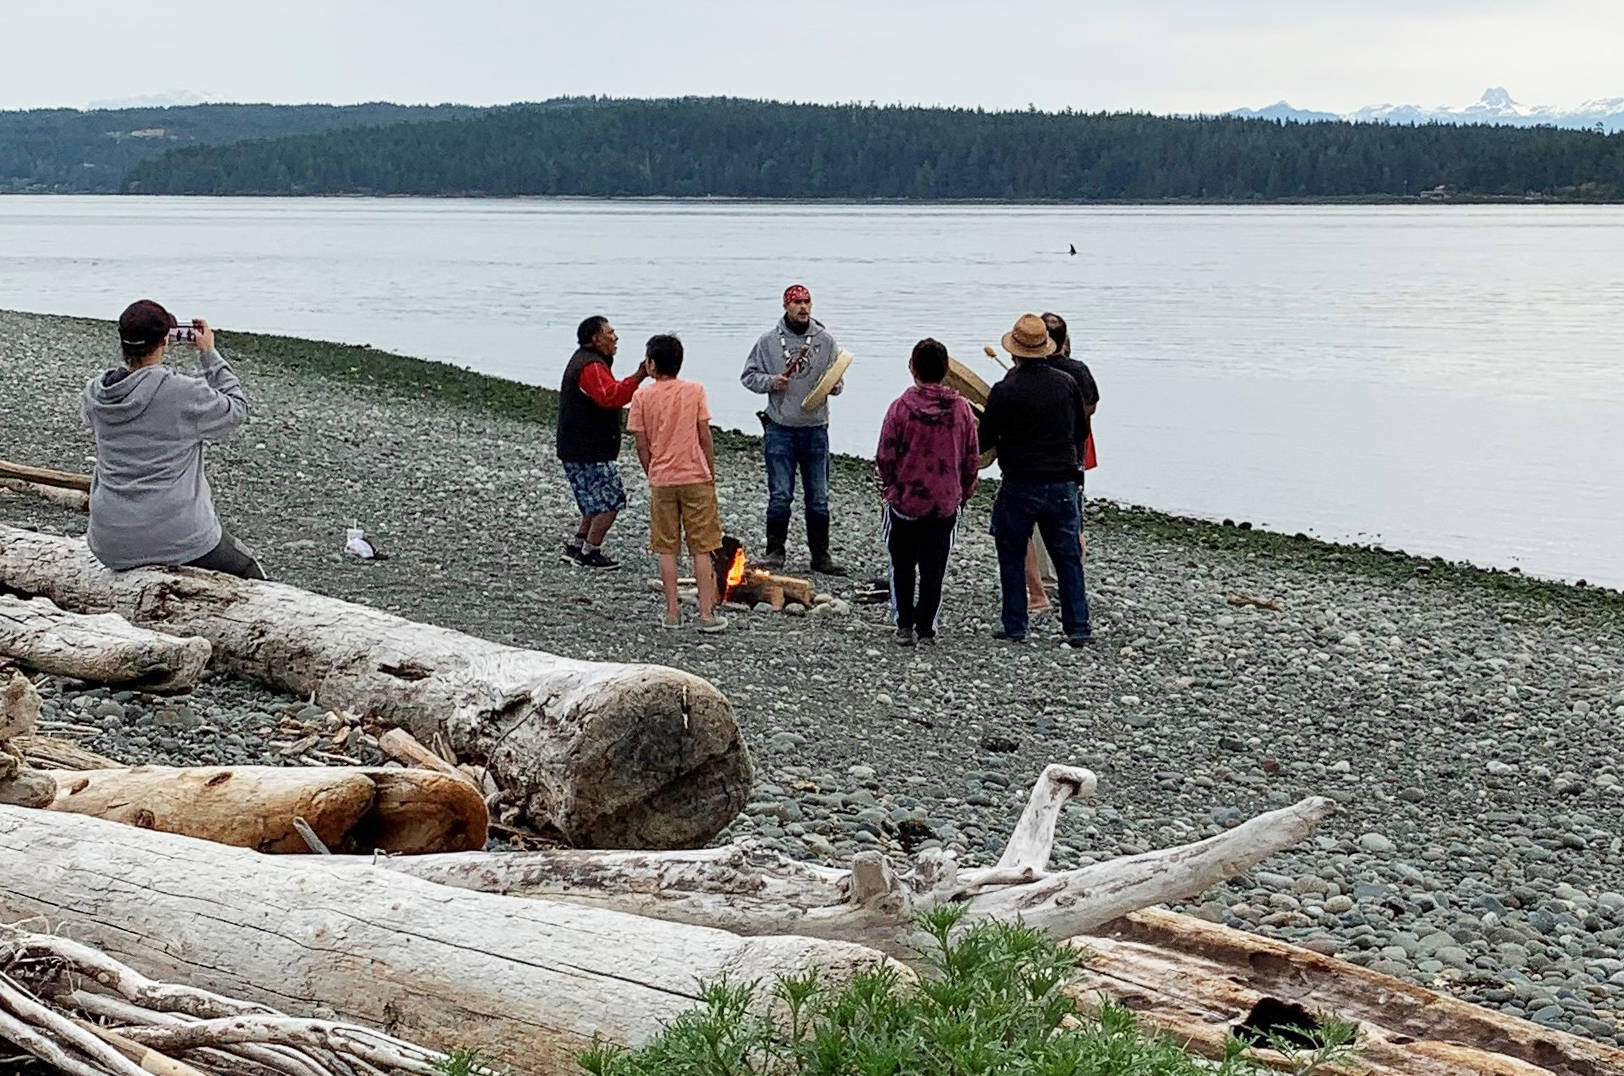 A pod of orcas joined the 7 Generation Steward Society at the Tyee Spit singing in memorial for the 215 children found in Kamloops. Photo courtesy Cory Cliffe